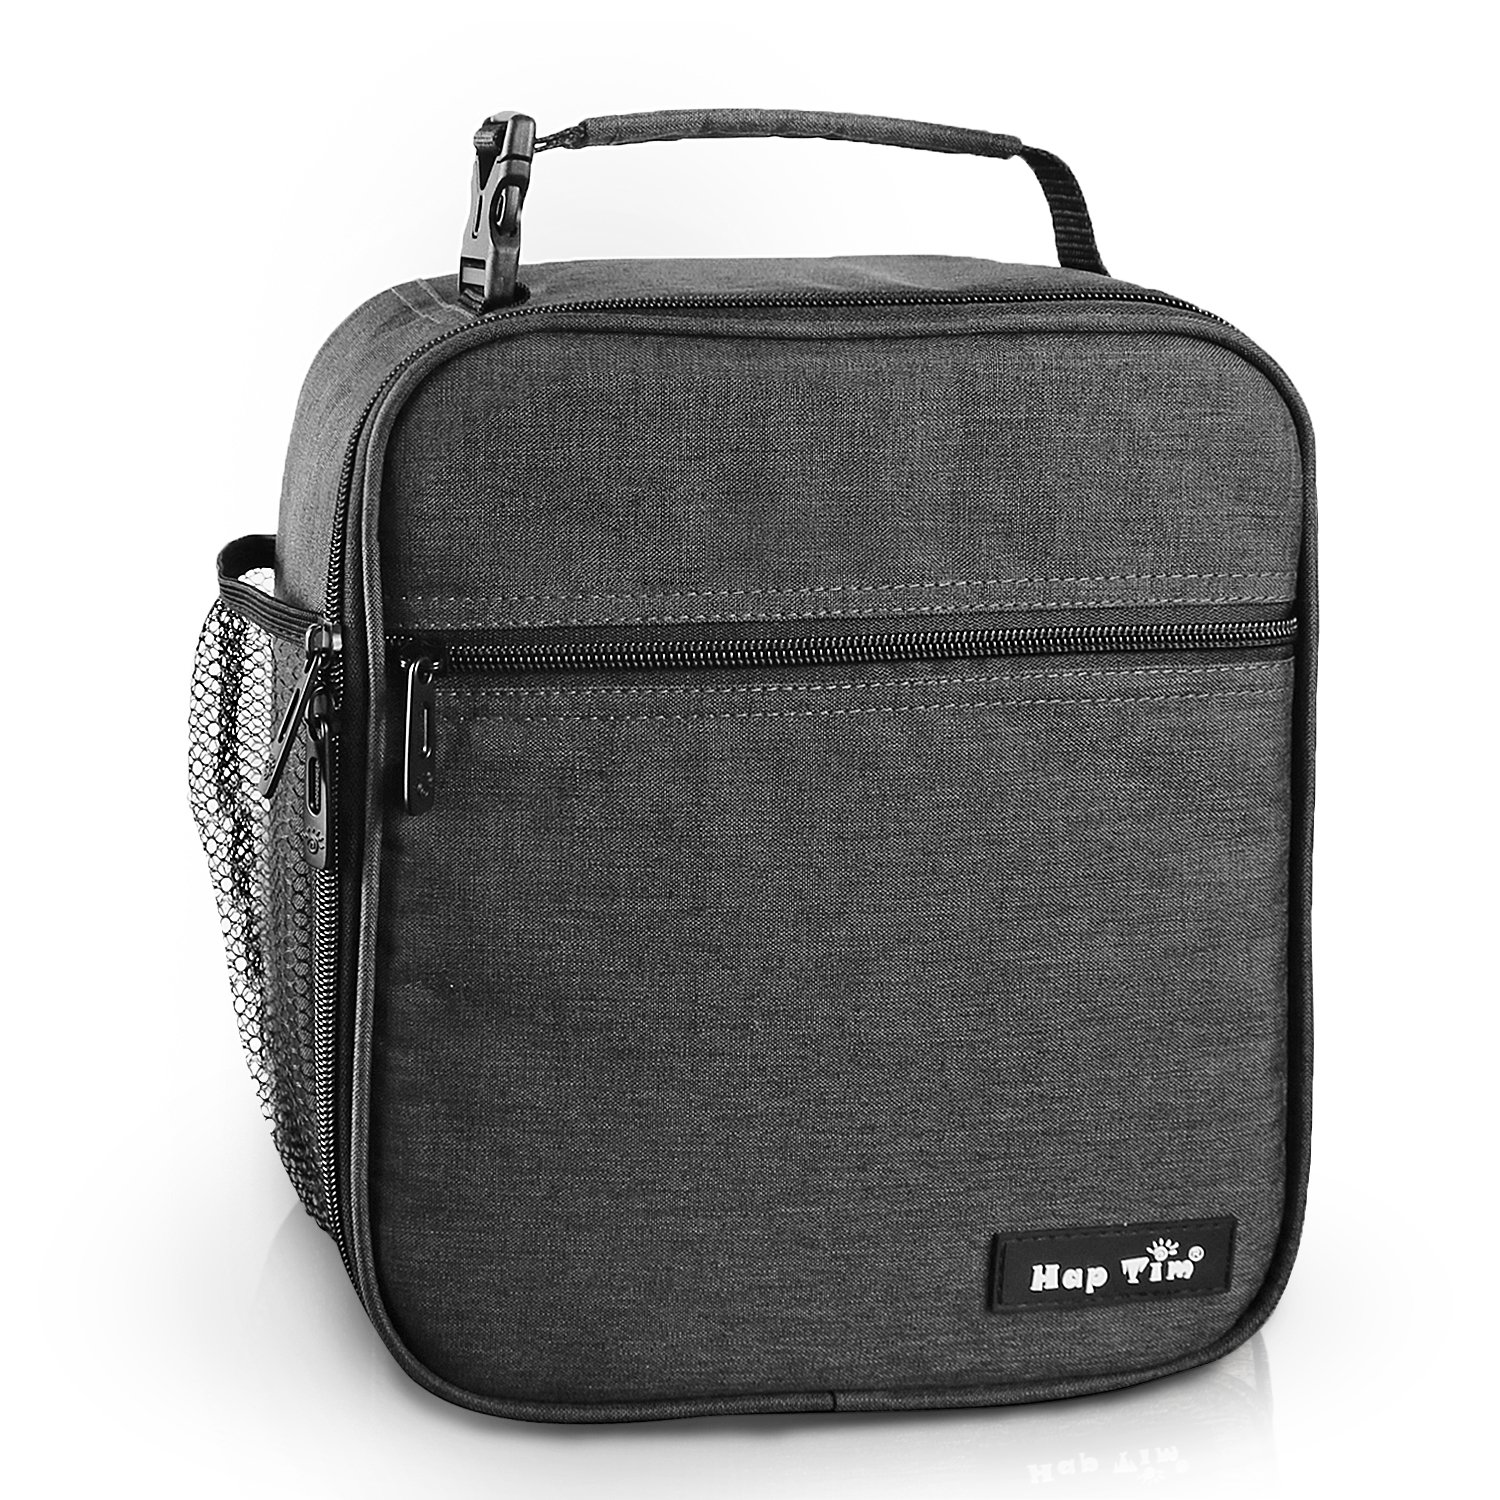 Hap Tim Insulated Lunch Bag for Men Women,Reusable Lunch Box for Kids Boys,Spacious Lunchbox Adult (18654-DG)